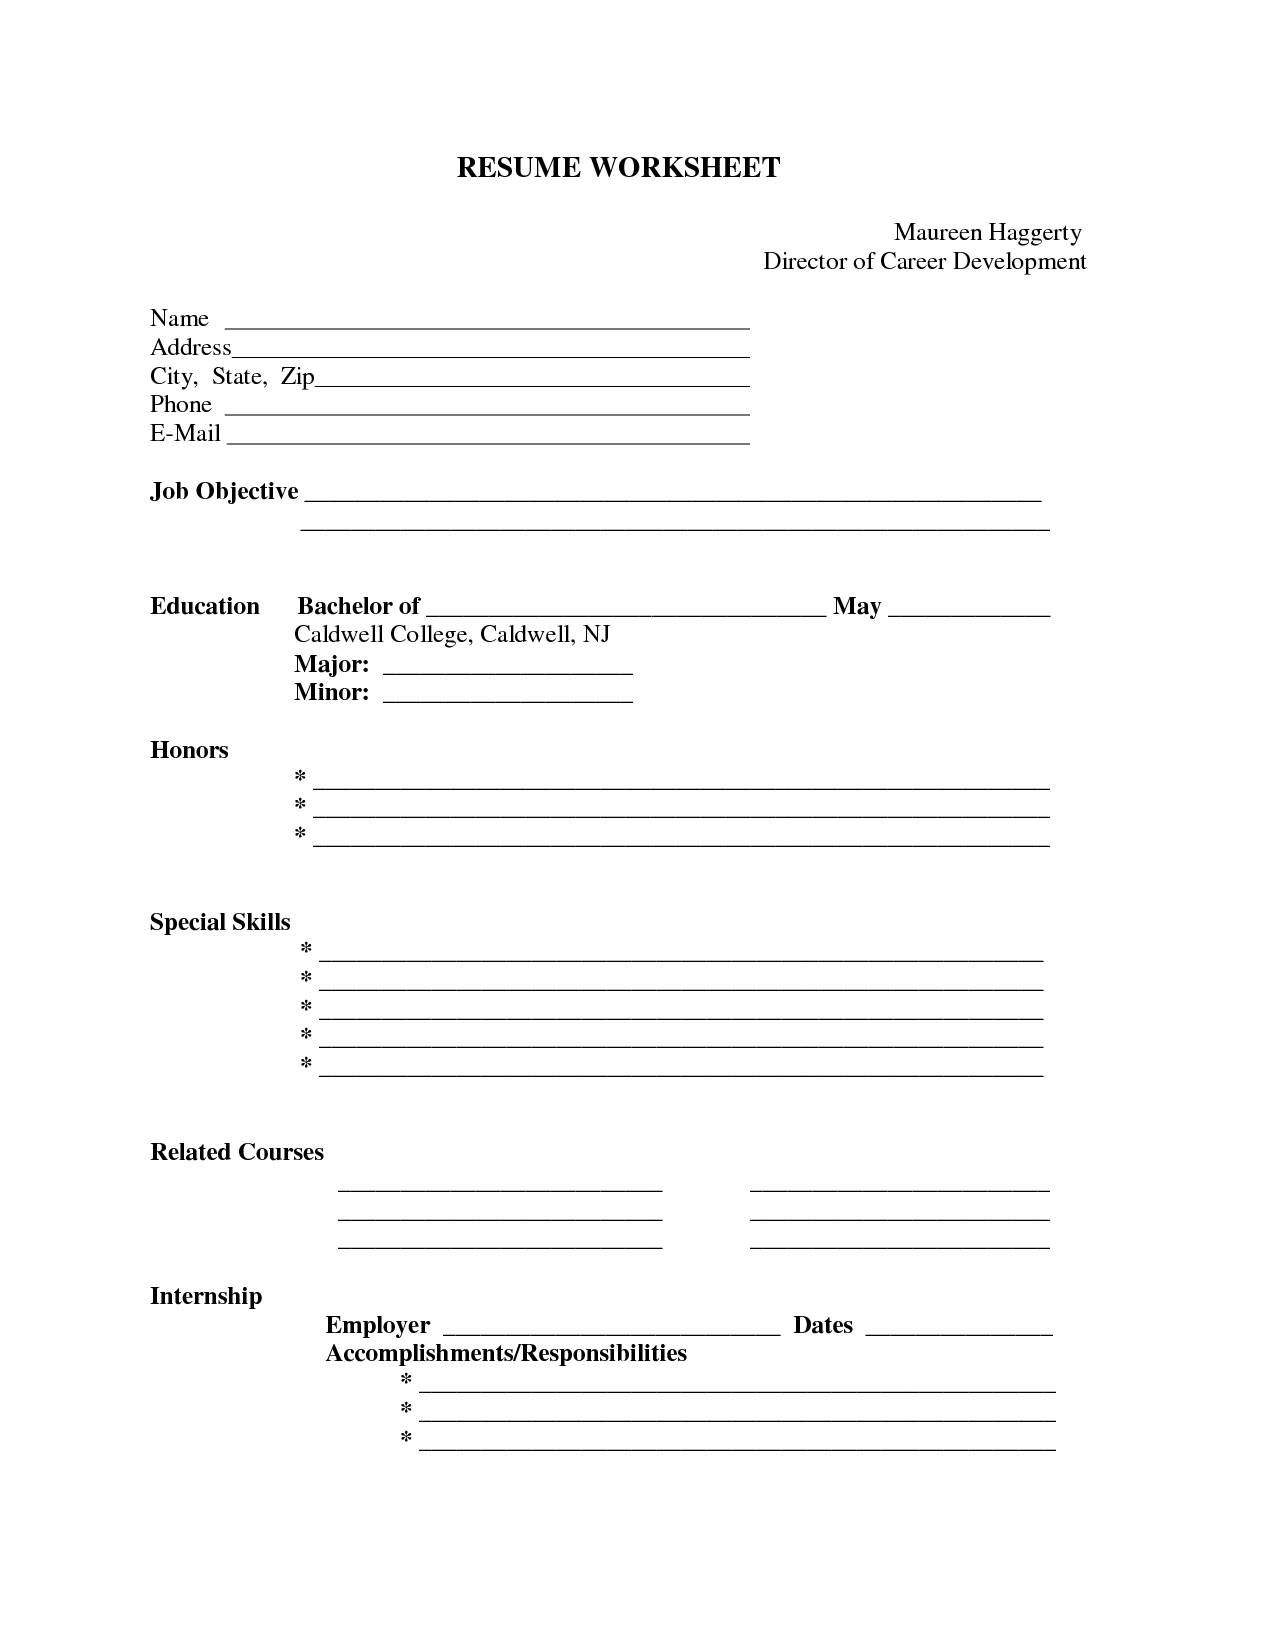 Free printable blank resume forms httpresumecareerfo free resume builder for high school students templates and print online maker template student blank ideas example yelopaper Gallery